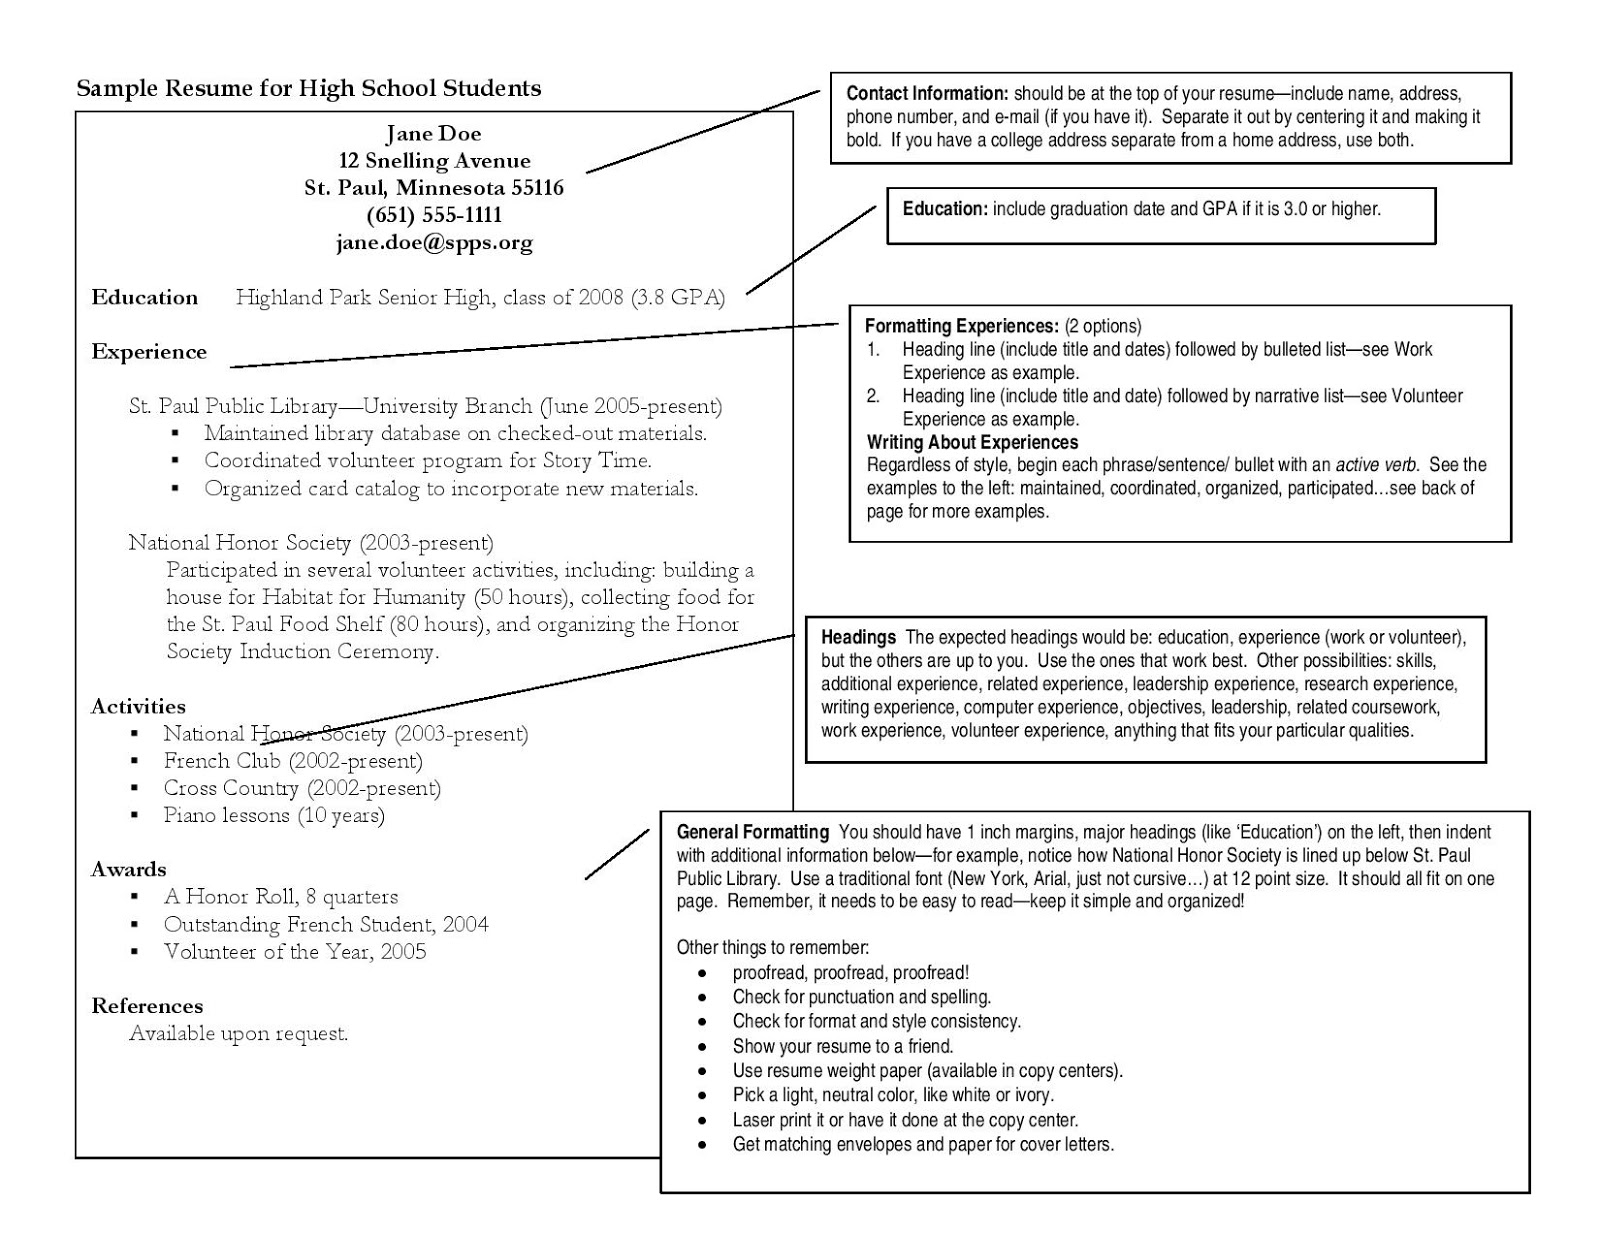 resume keywords and phrases printable questionnaire resume action words phrases pdf resume examples and writing tips - Resume Phrases